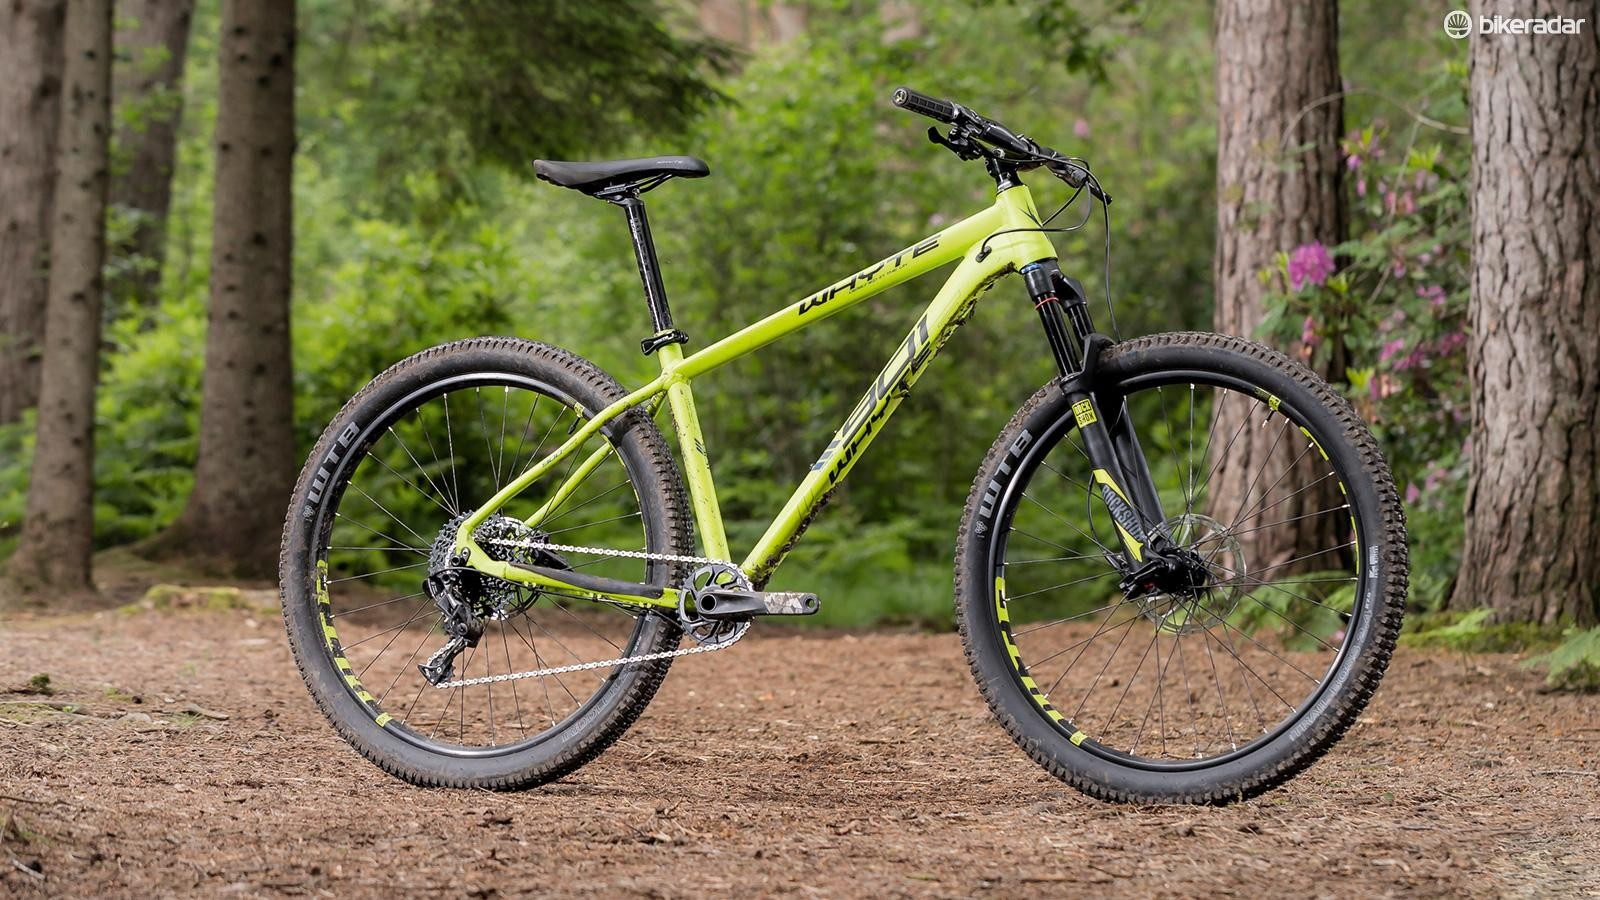 Whyte's 901 hardtail